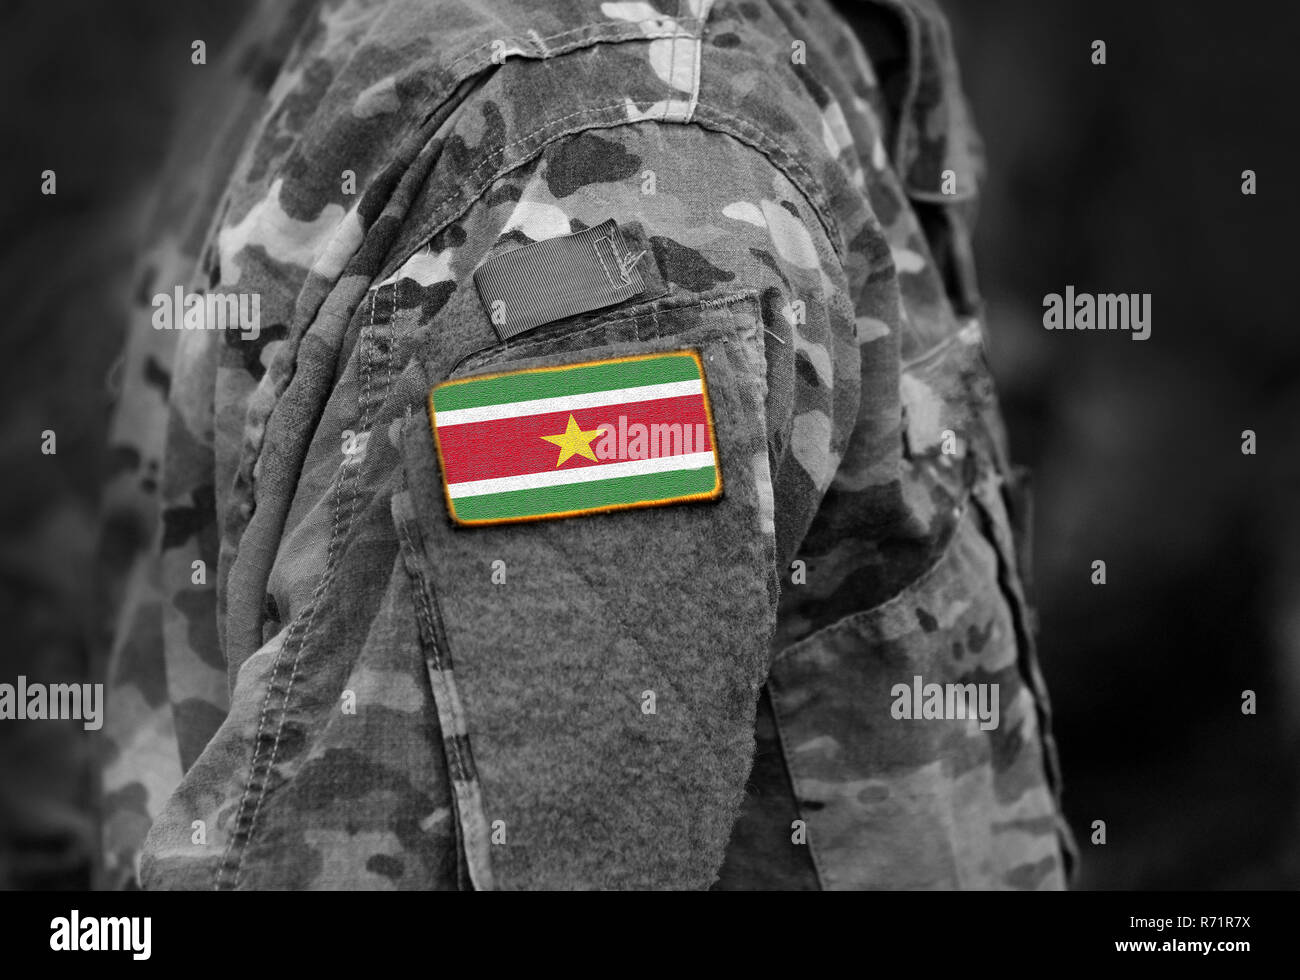 Flag of Suriname on soldier arm. Flag of Suriname on military uniforms (collage). Stock Photo